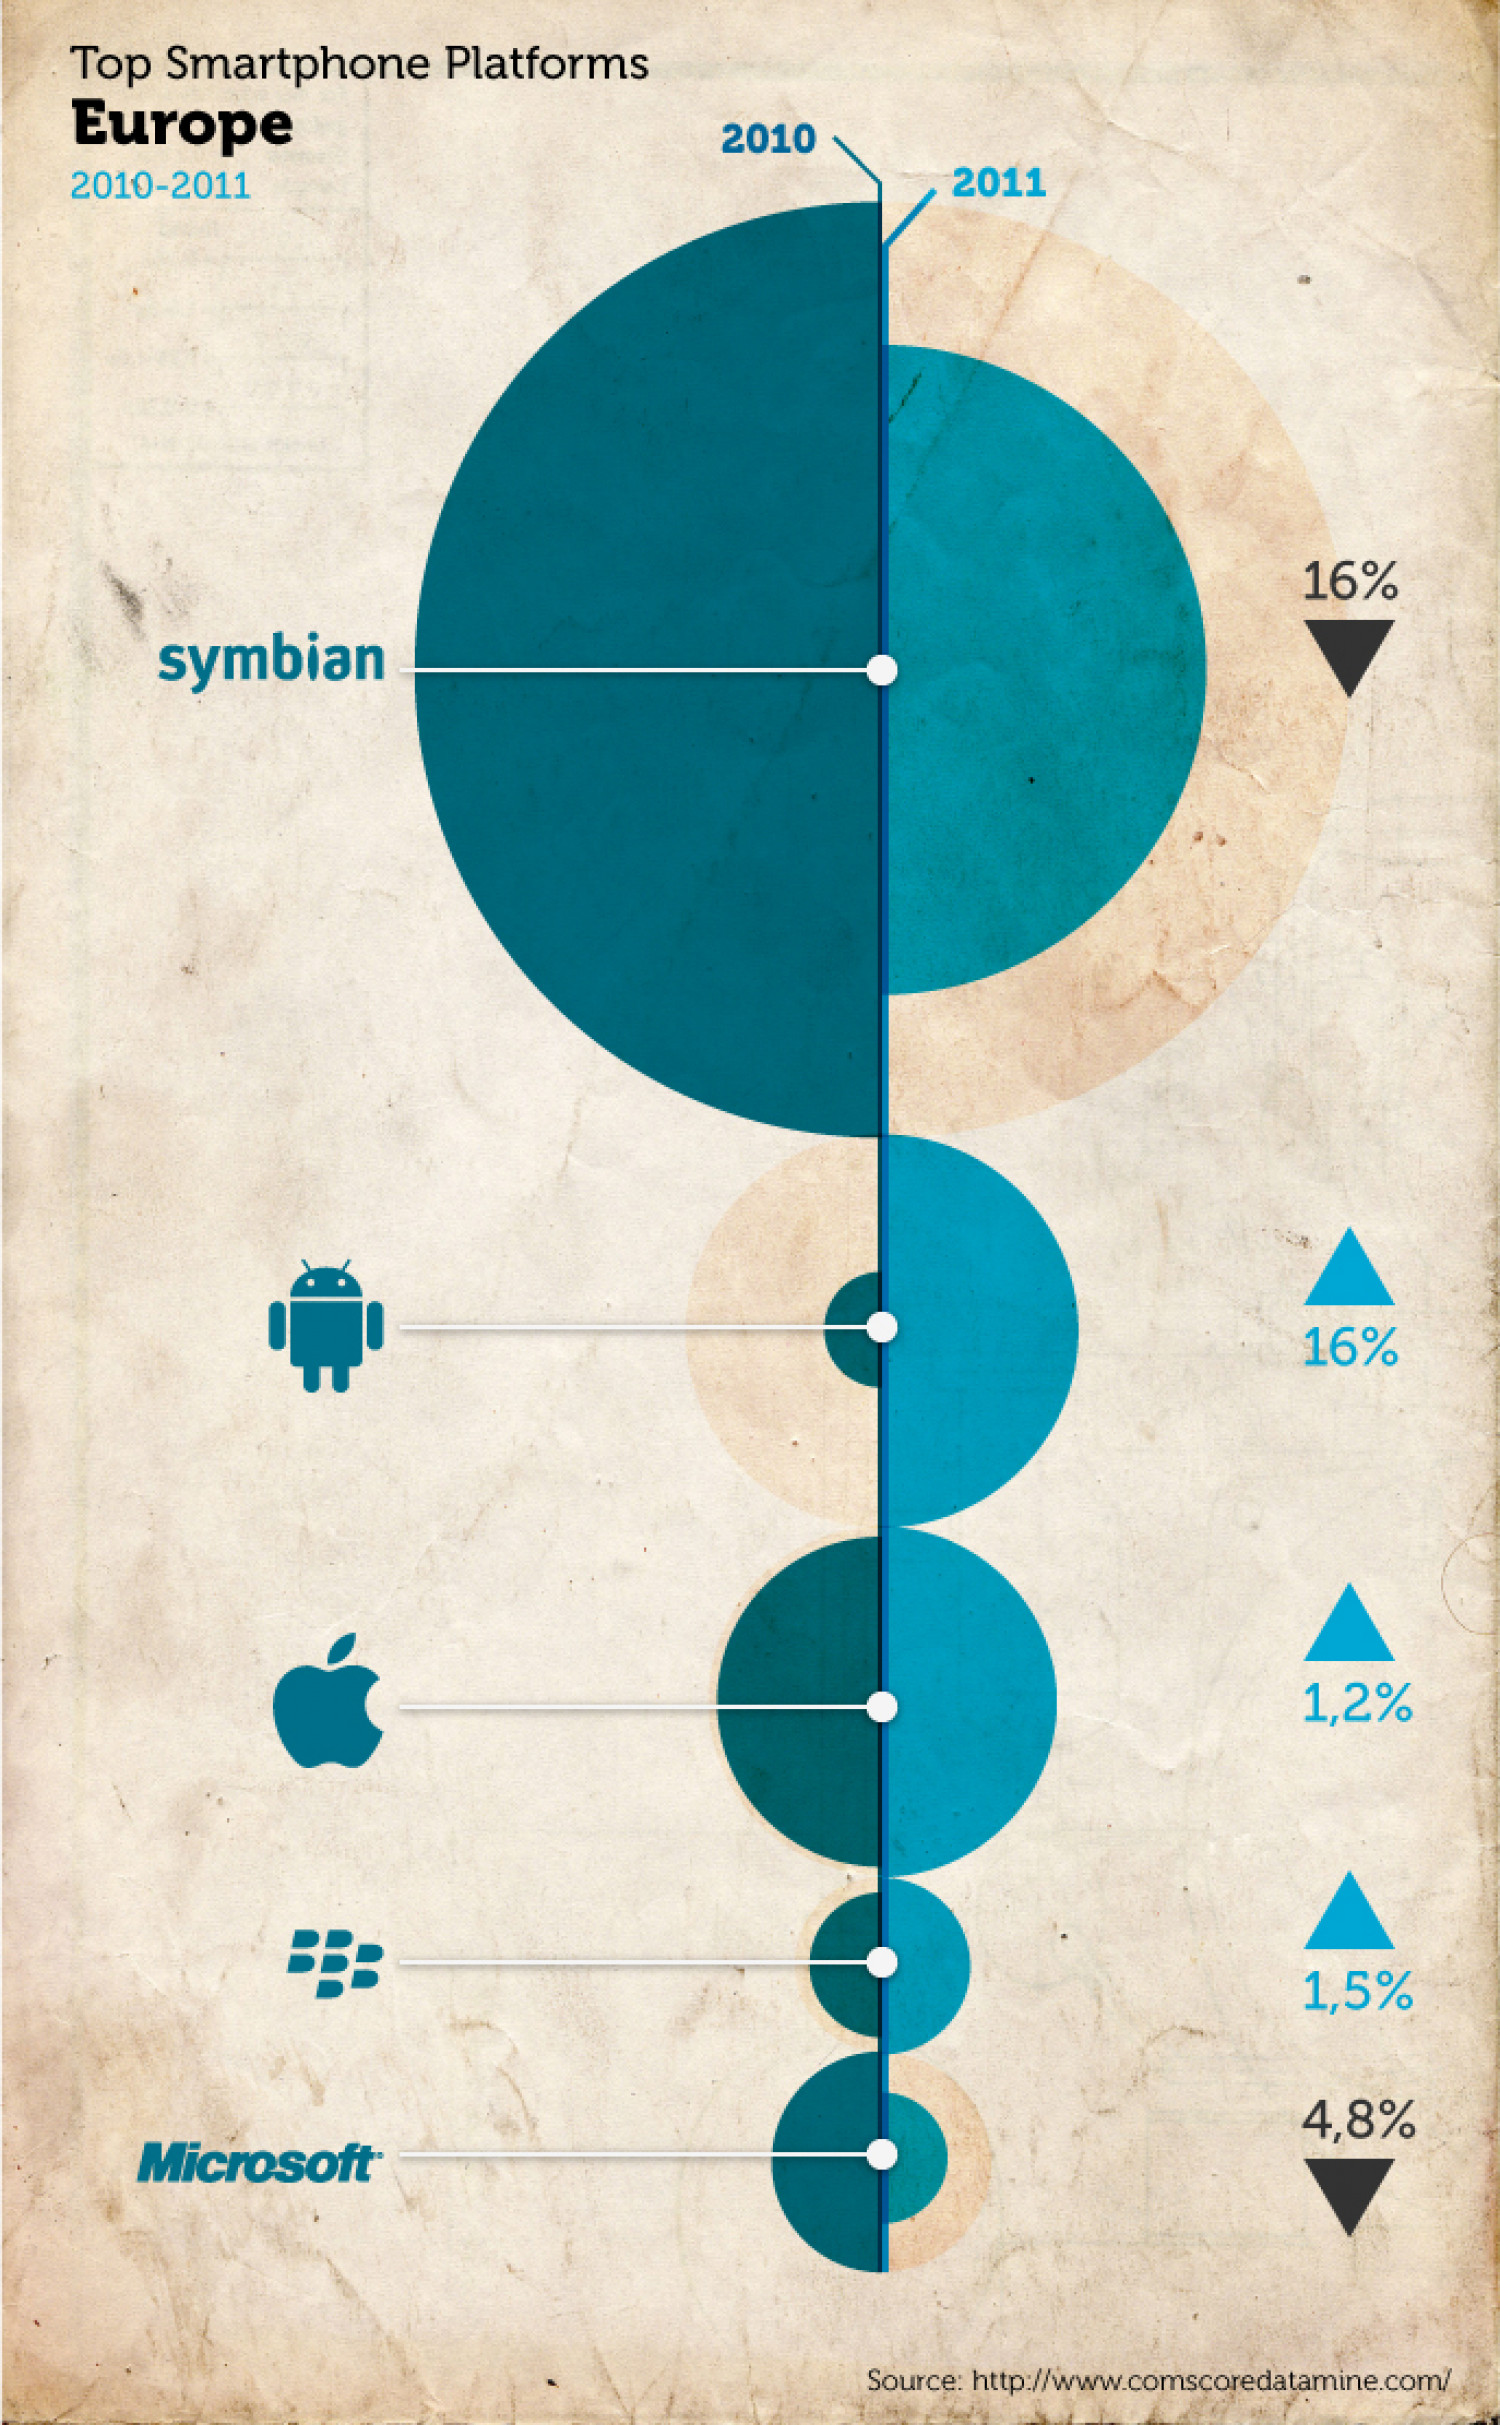 European shares on smartphones Infographic